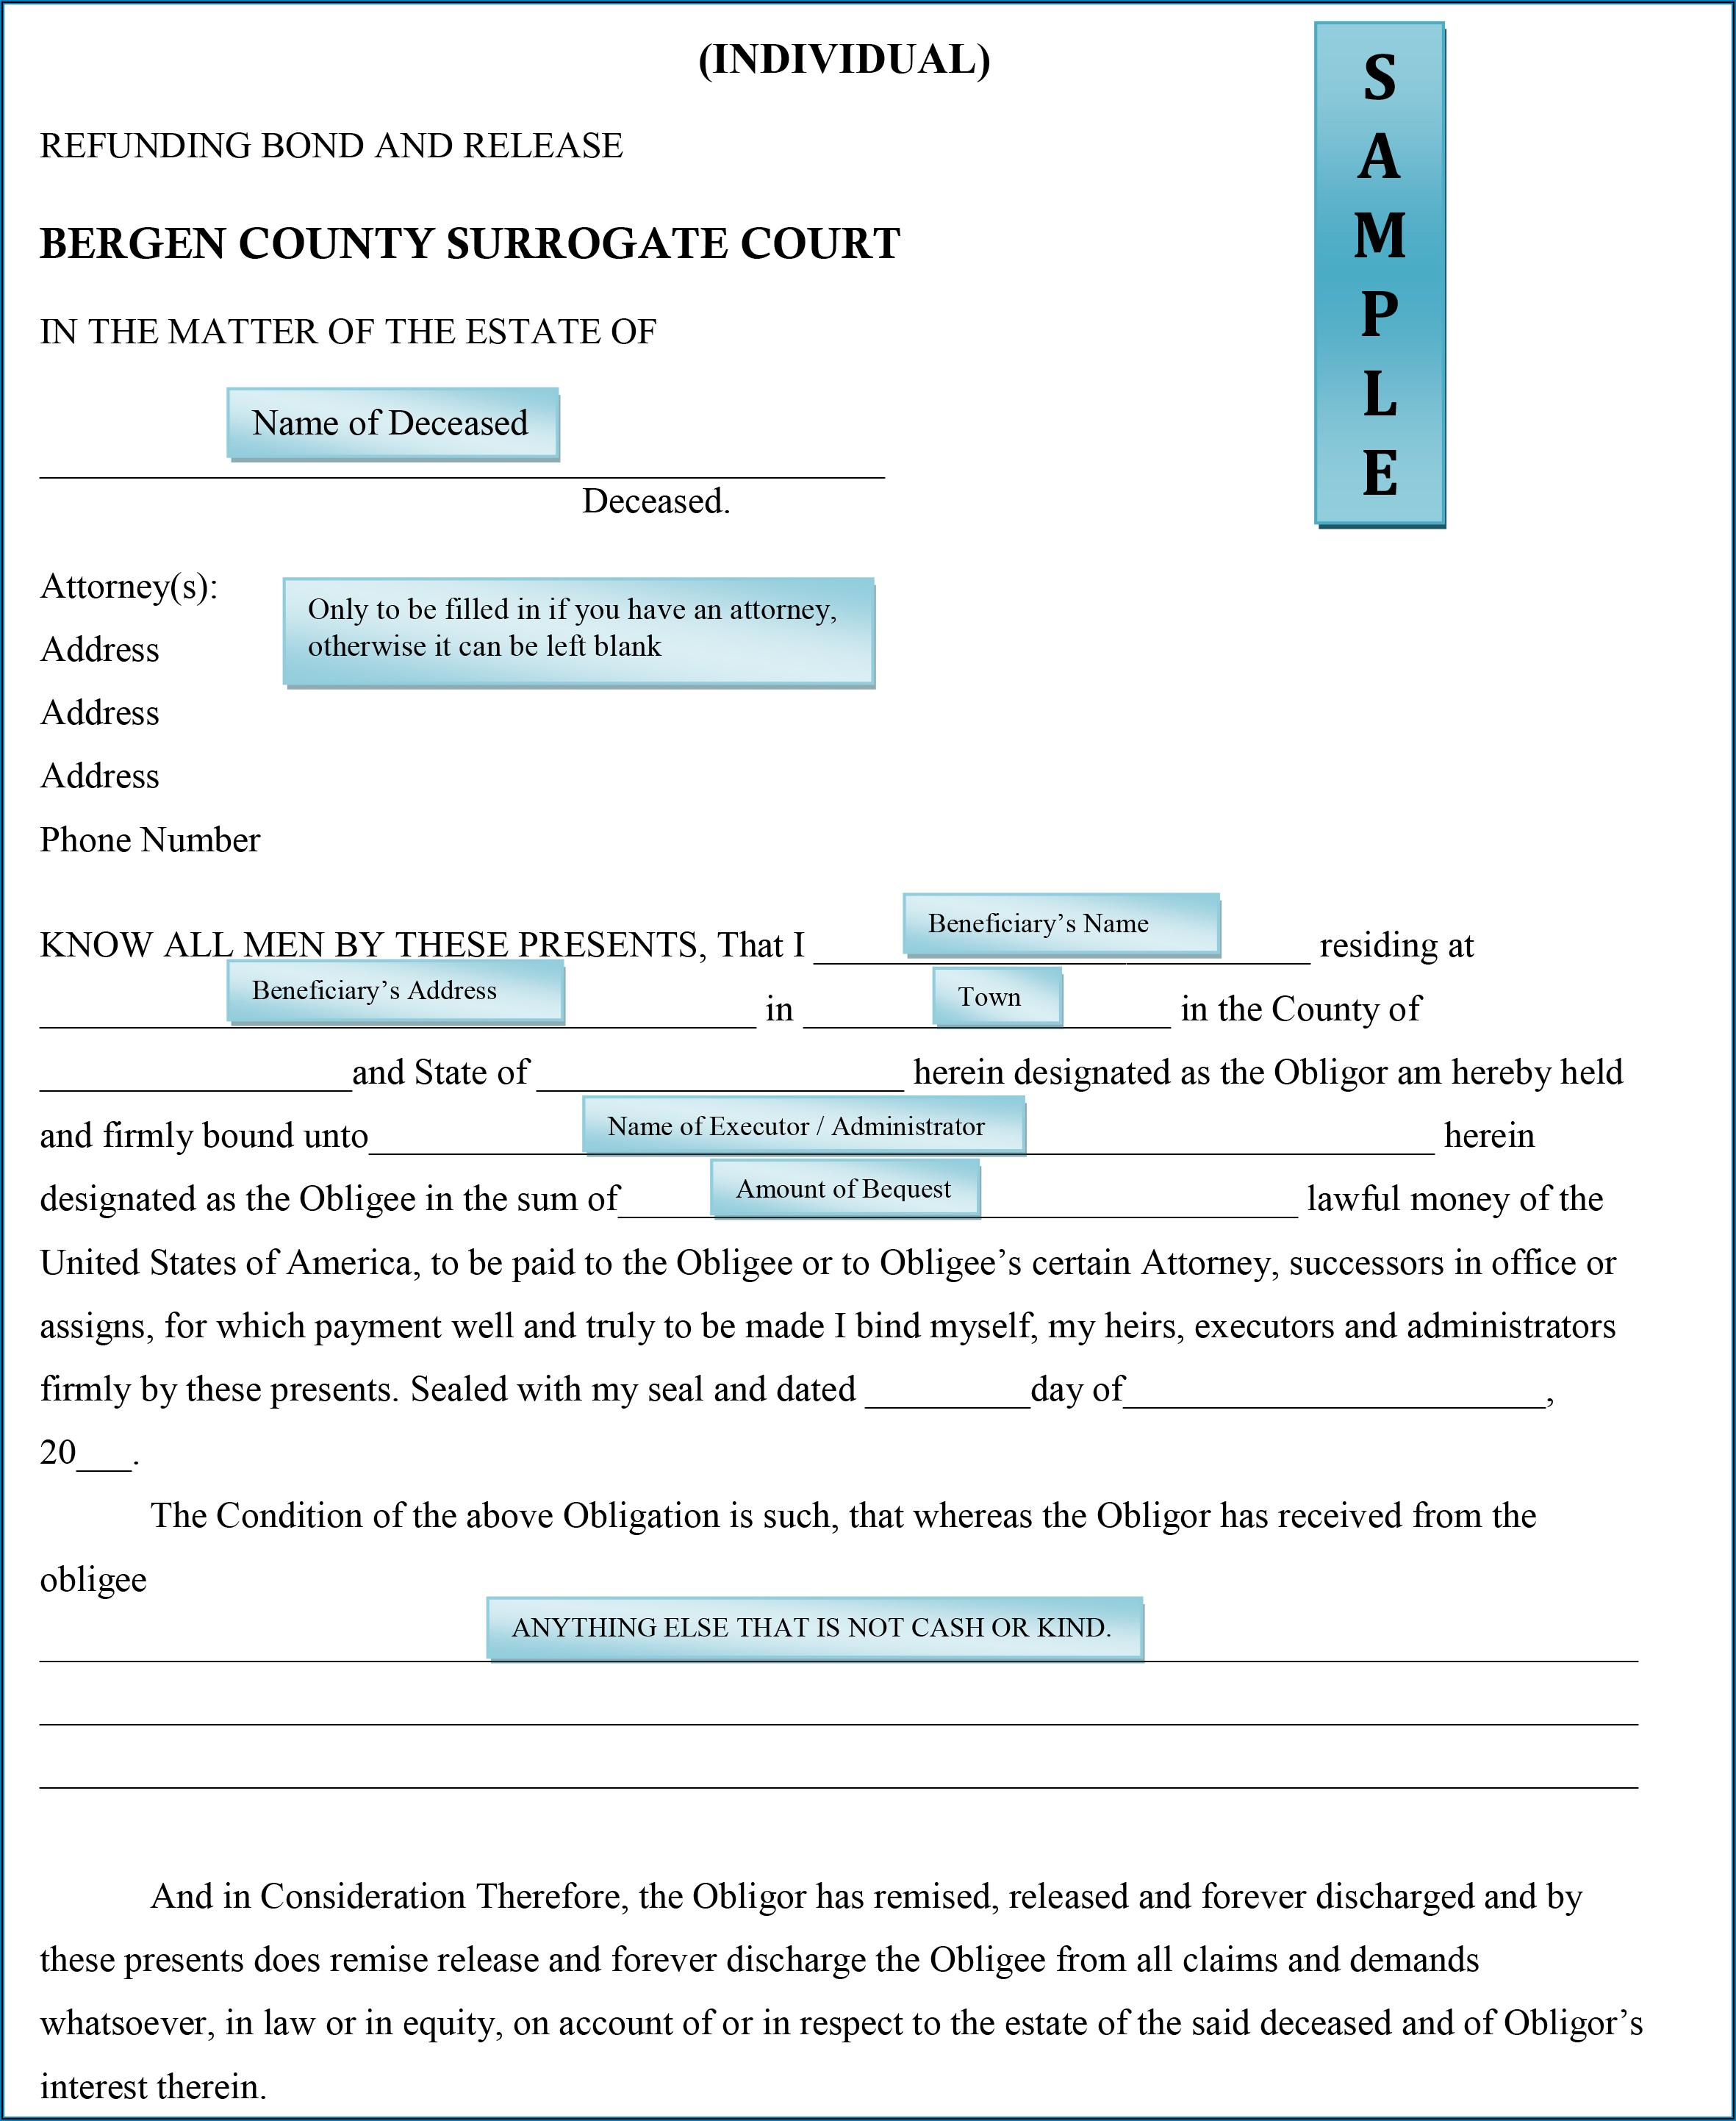 Essex County Surrogate Court Forms